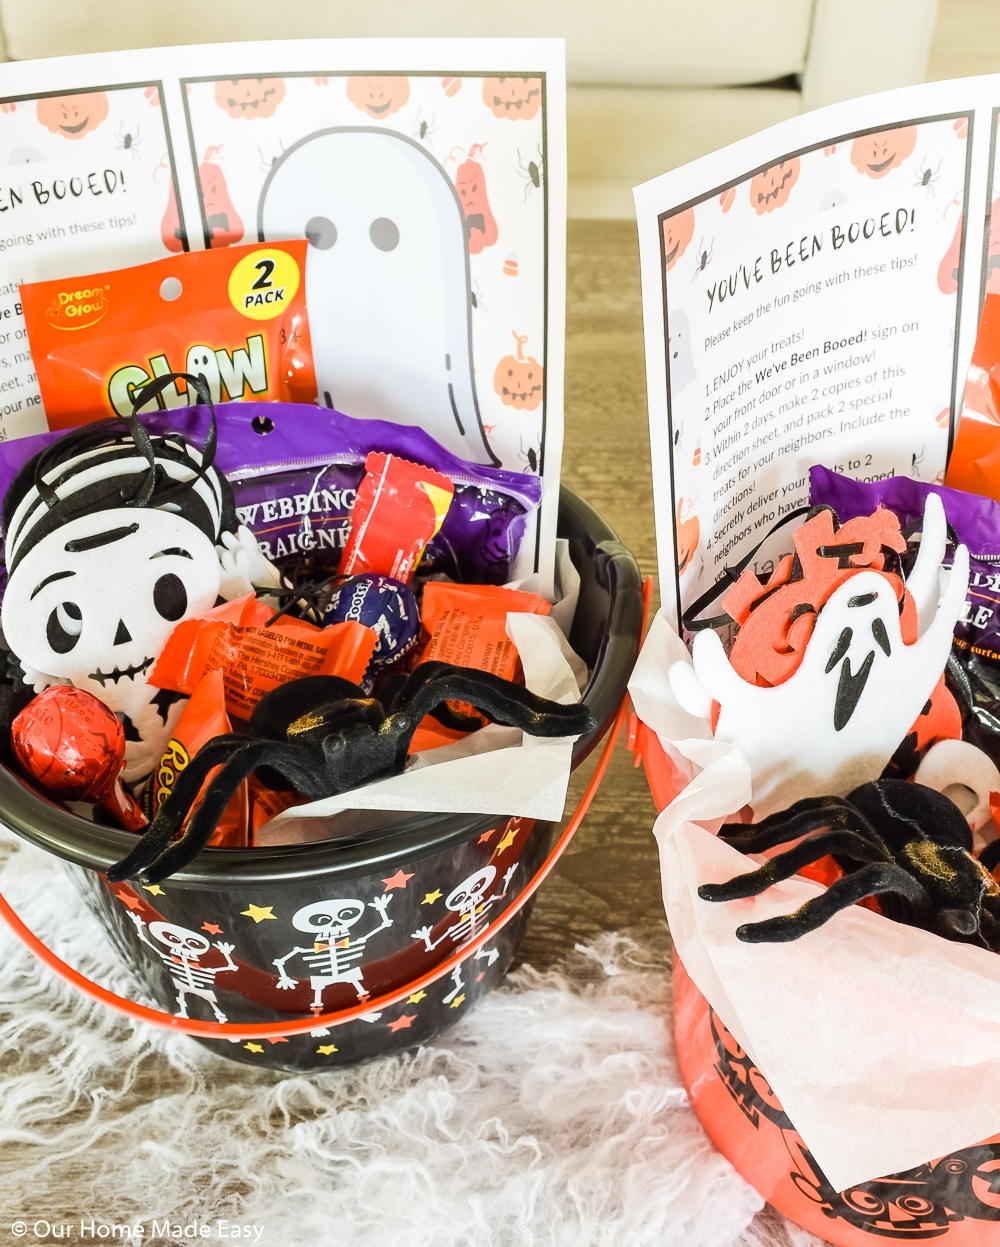 These You've Been Booed buckets are a fun way to celebrate Halloween with your friends and family